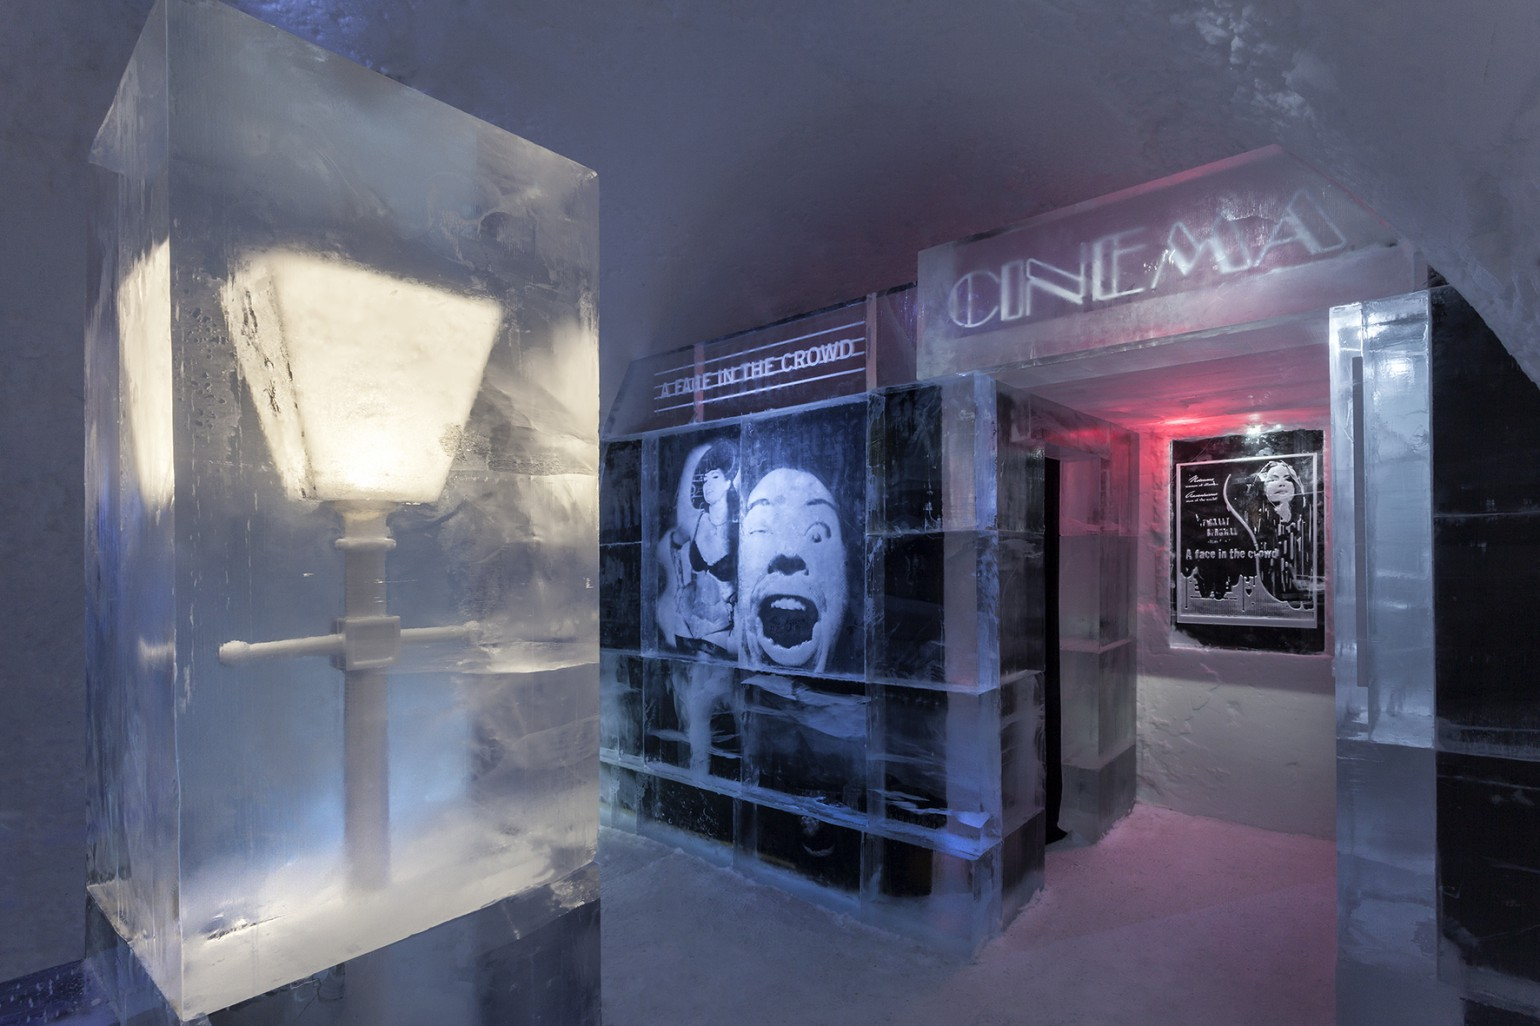 a_face_in_the_crowd_1_photo_christian_stromqvist_design_icehotel